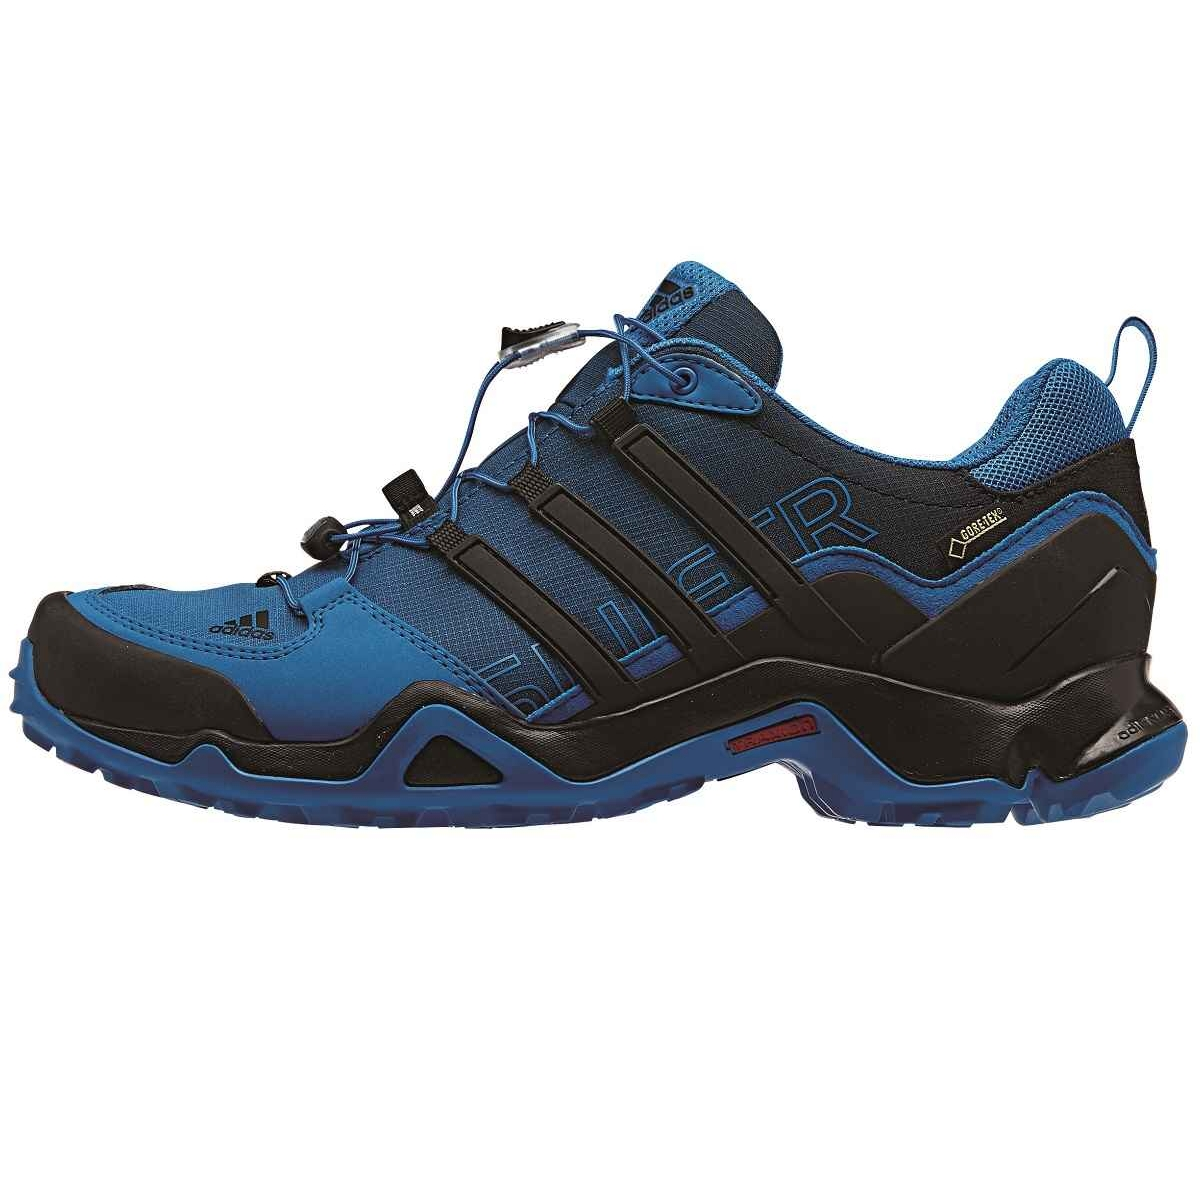 adidas terrex swift r gtx gore tex schuhe wanderschuhe. Black Bedroom Furniture Sets. Home Design Ideas